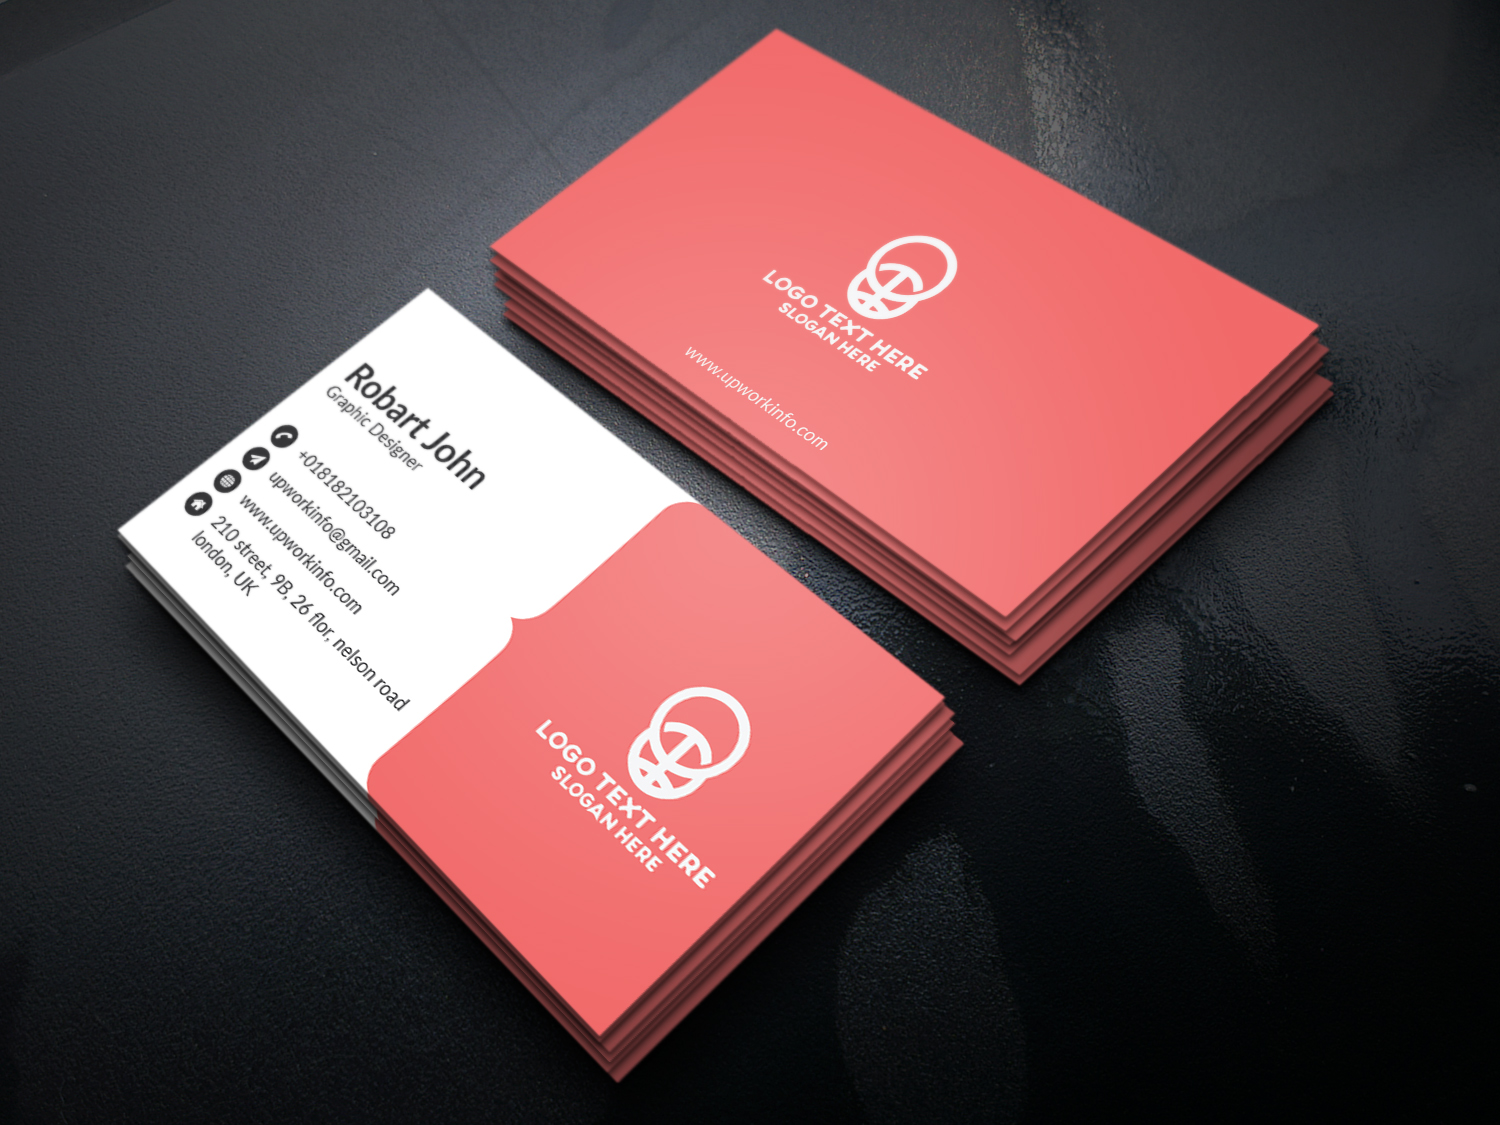 I will design modern, minimalist and premium looking business cards